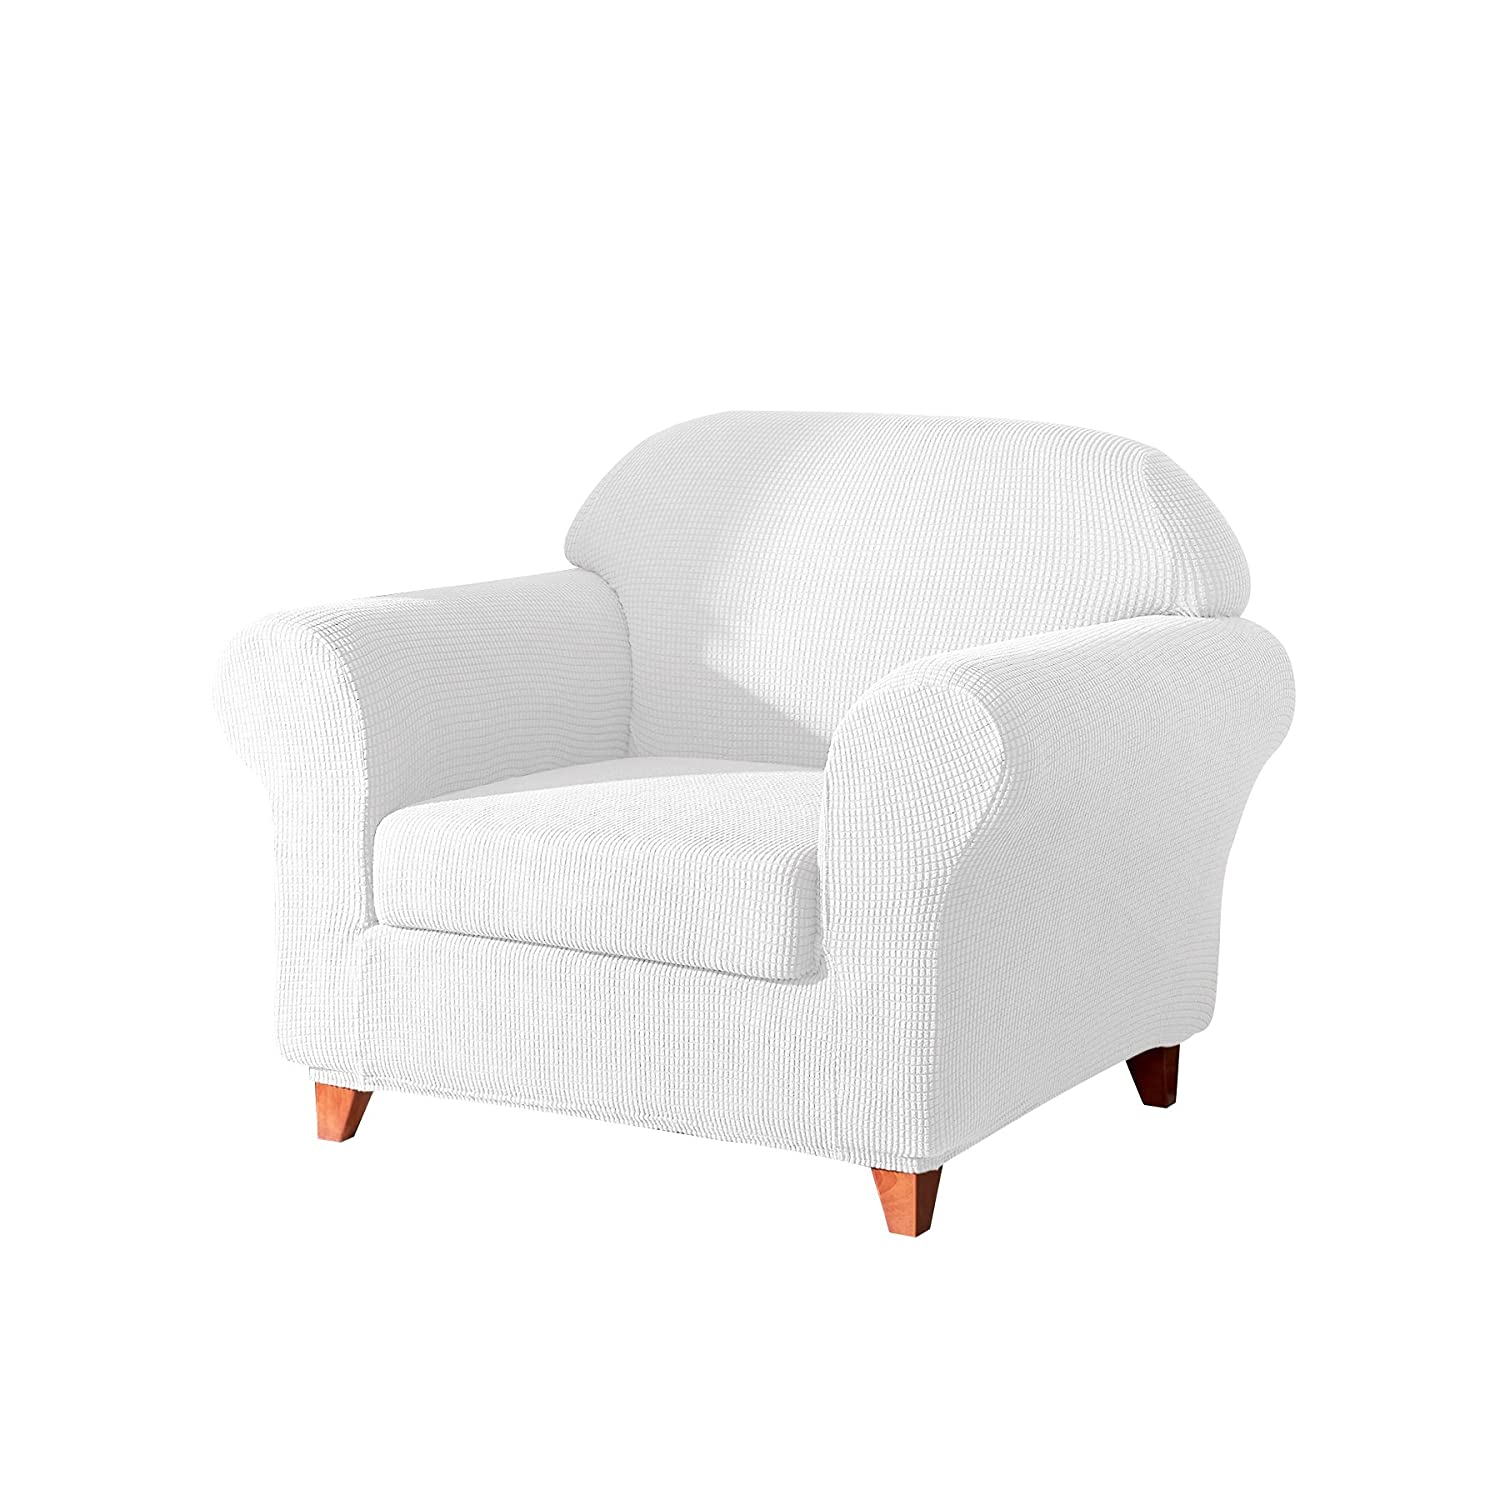 Fassbel 2-Piece Sofa Slipcovers Stretch Antislip Couch Cover for Living Room (Chair, Off-White)